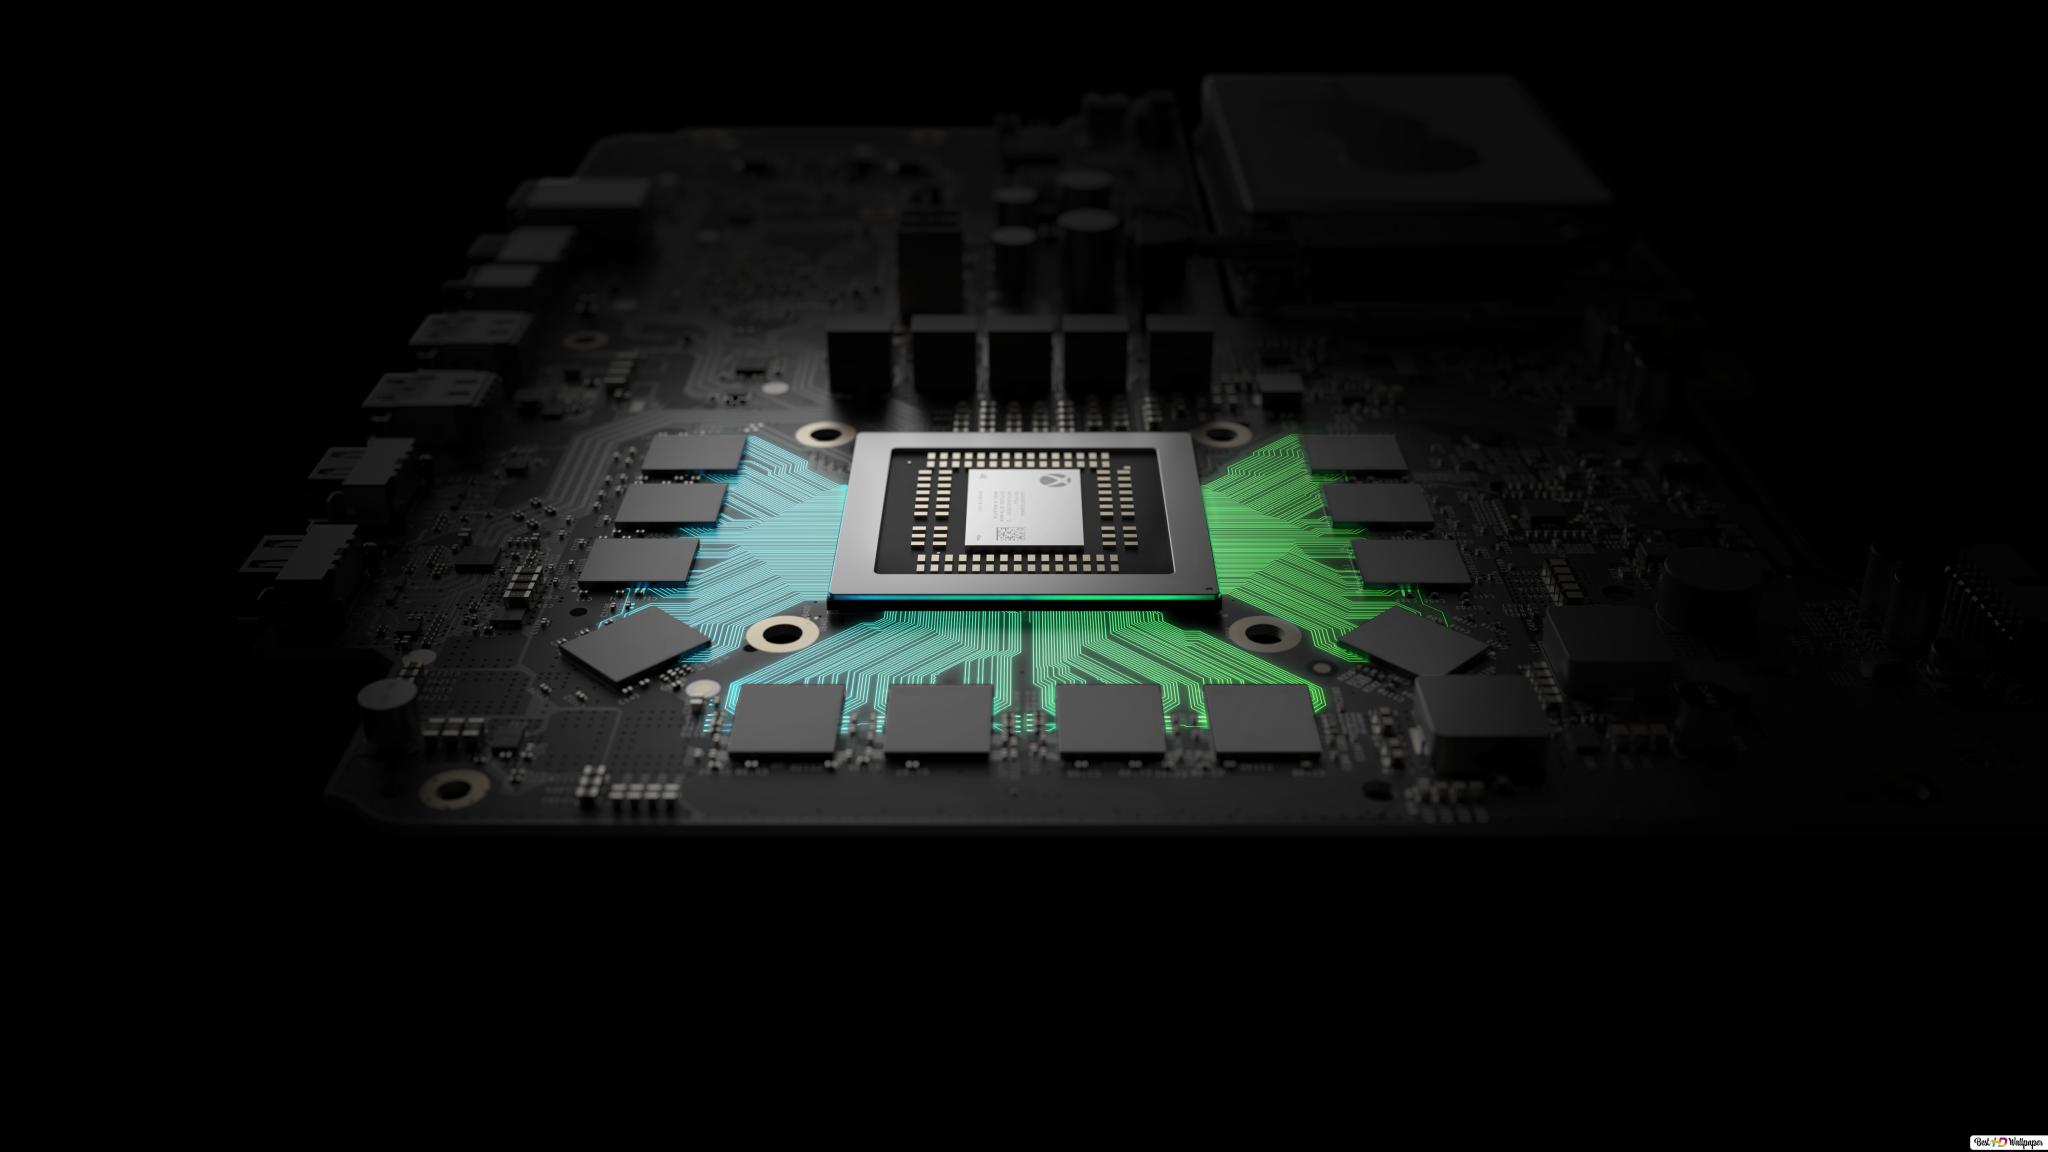 Xbox One X Gaming Console Hardware Hd Wallpaper Download